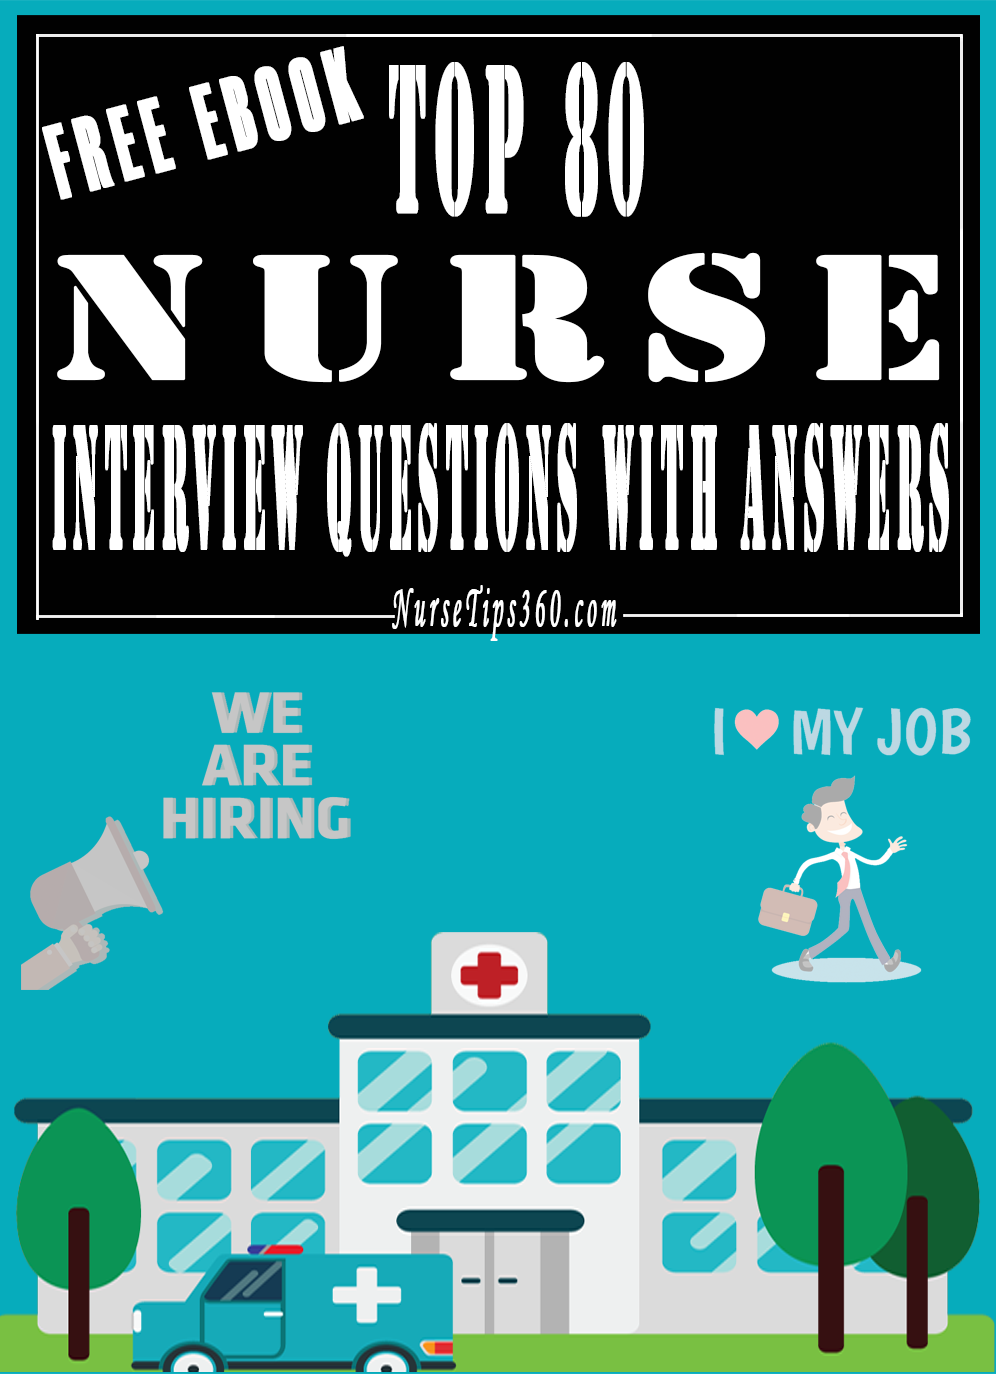 Nursing Interview Questions And Answers Top 80 Nurse Interview Questions With Answers  Nursetips360